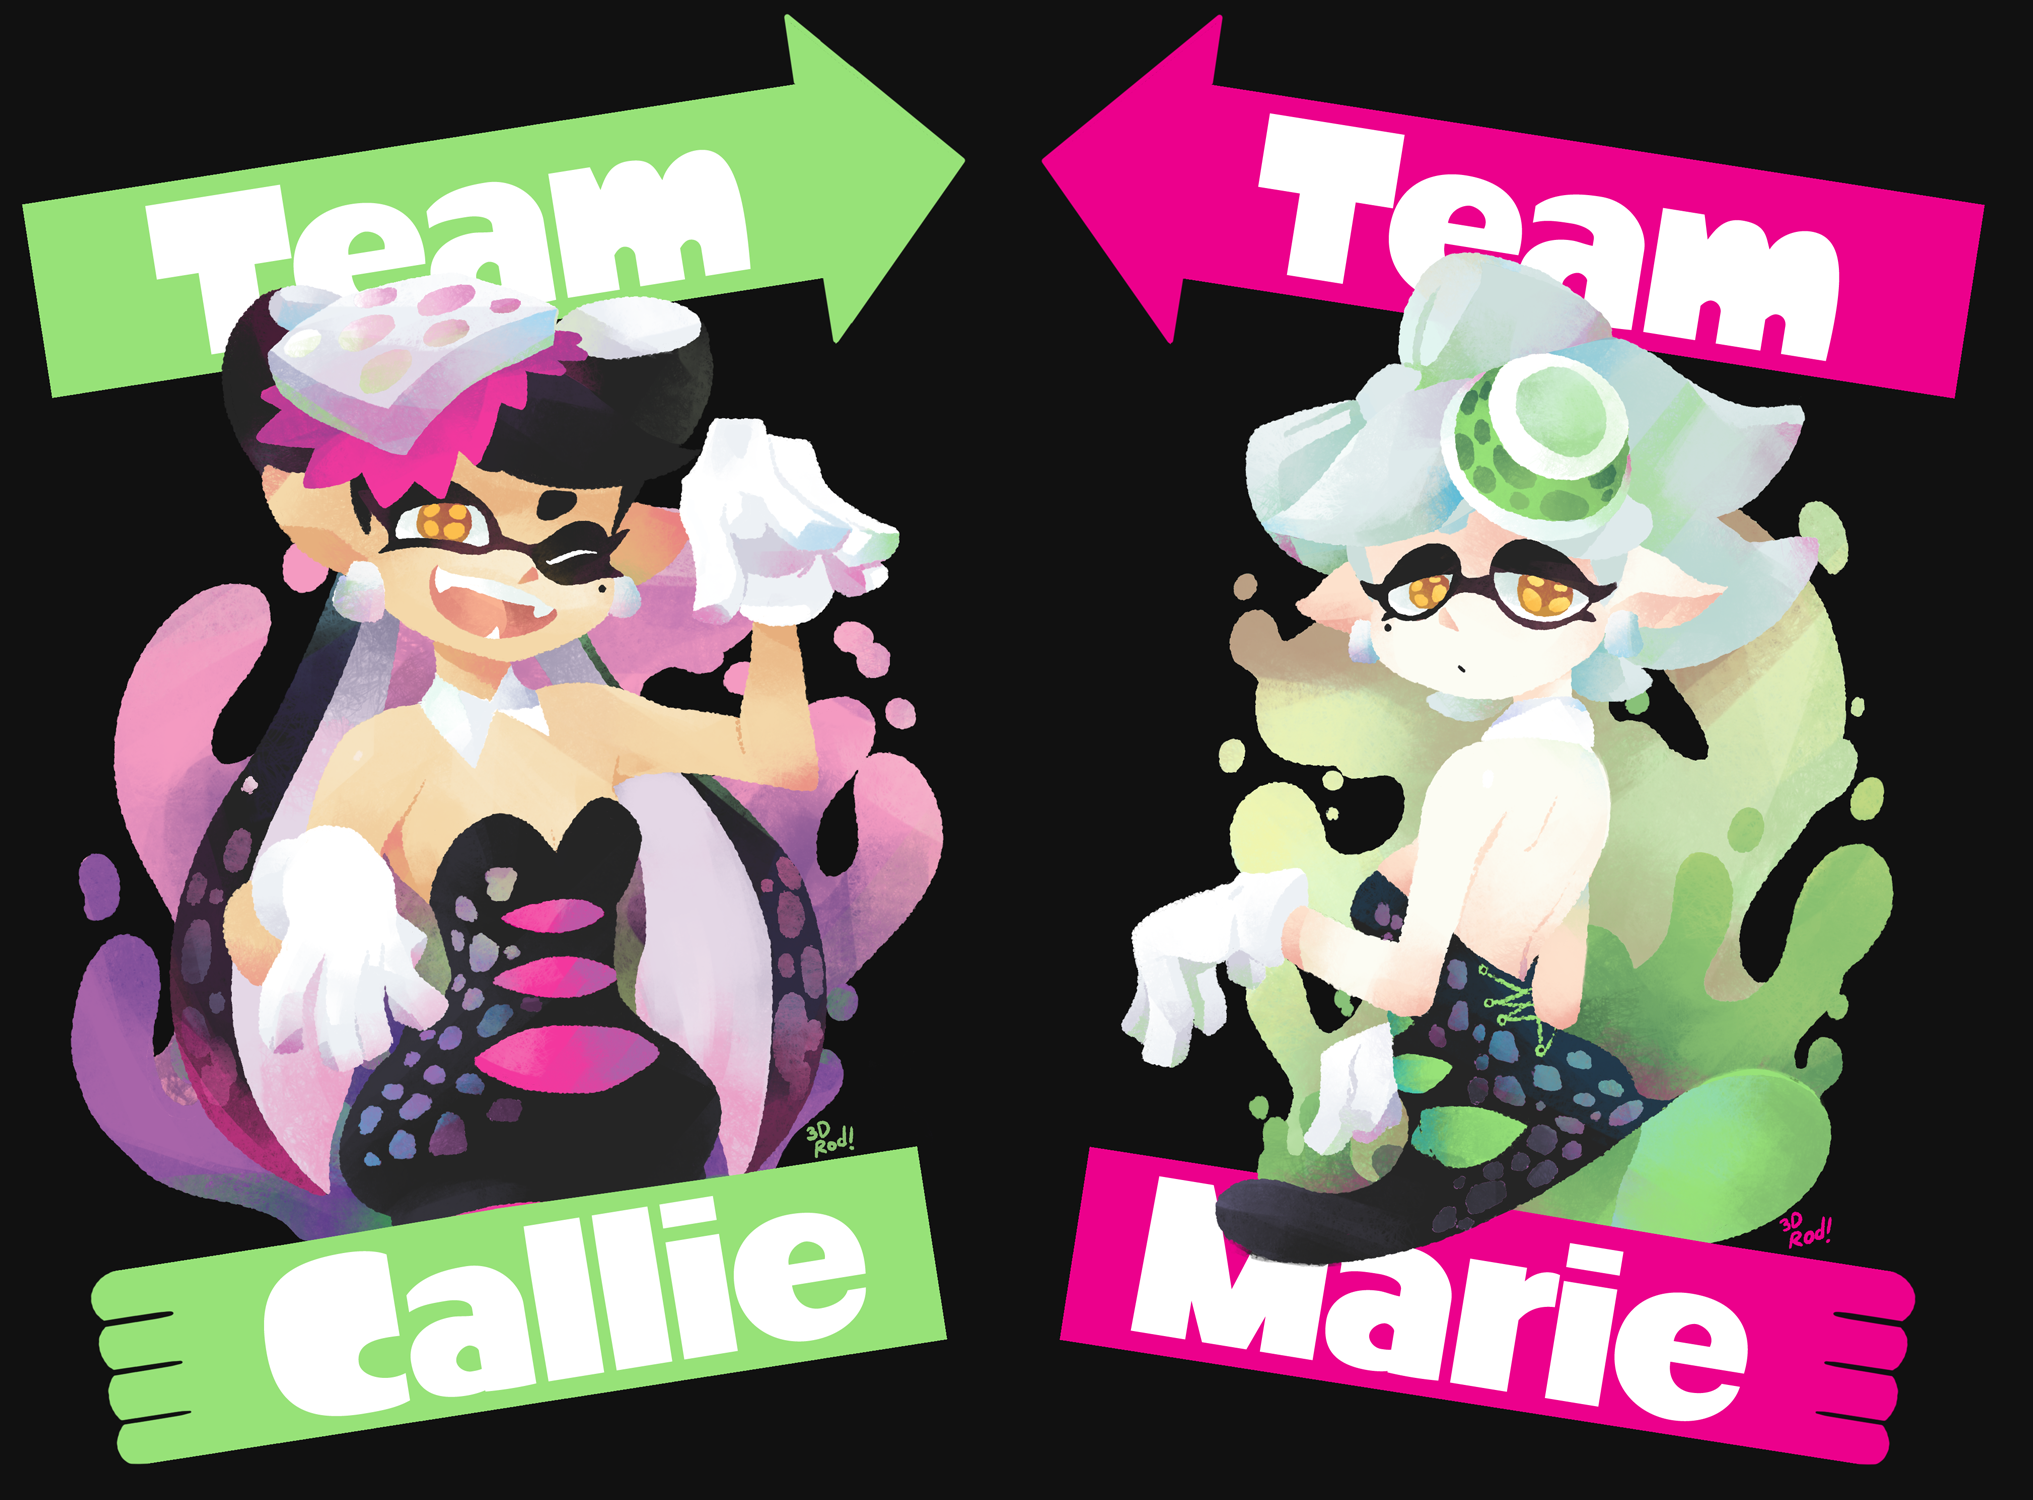 Final Splatfest: Callie vs Marie